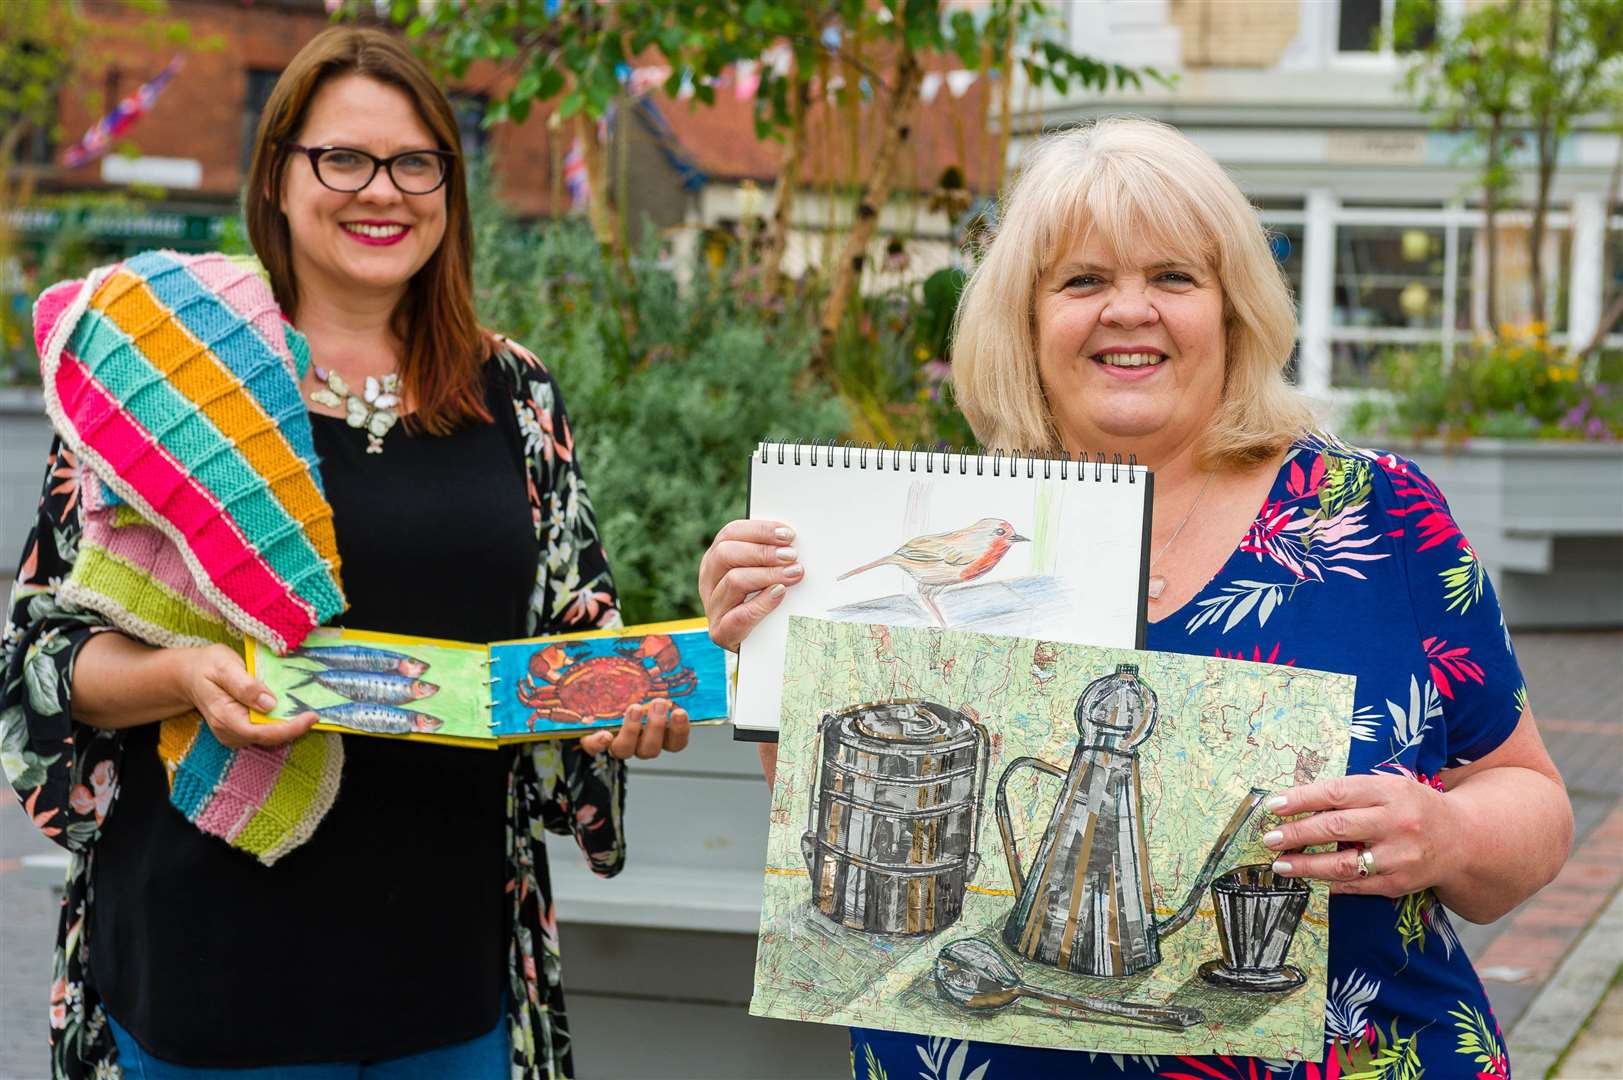 Julie Filmer (left) and Pam Spicer of Arty Crafy Norfolk Picture: MARK BULLIMORE PHOTOGRAPHY.